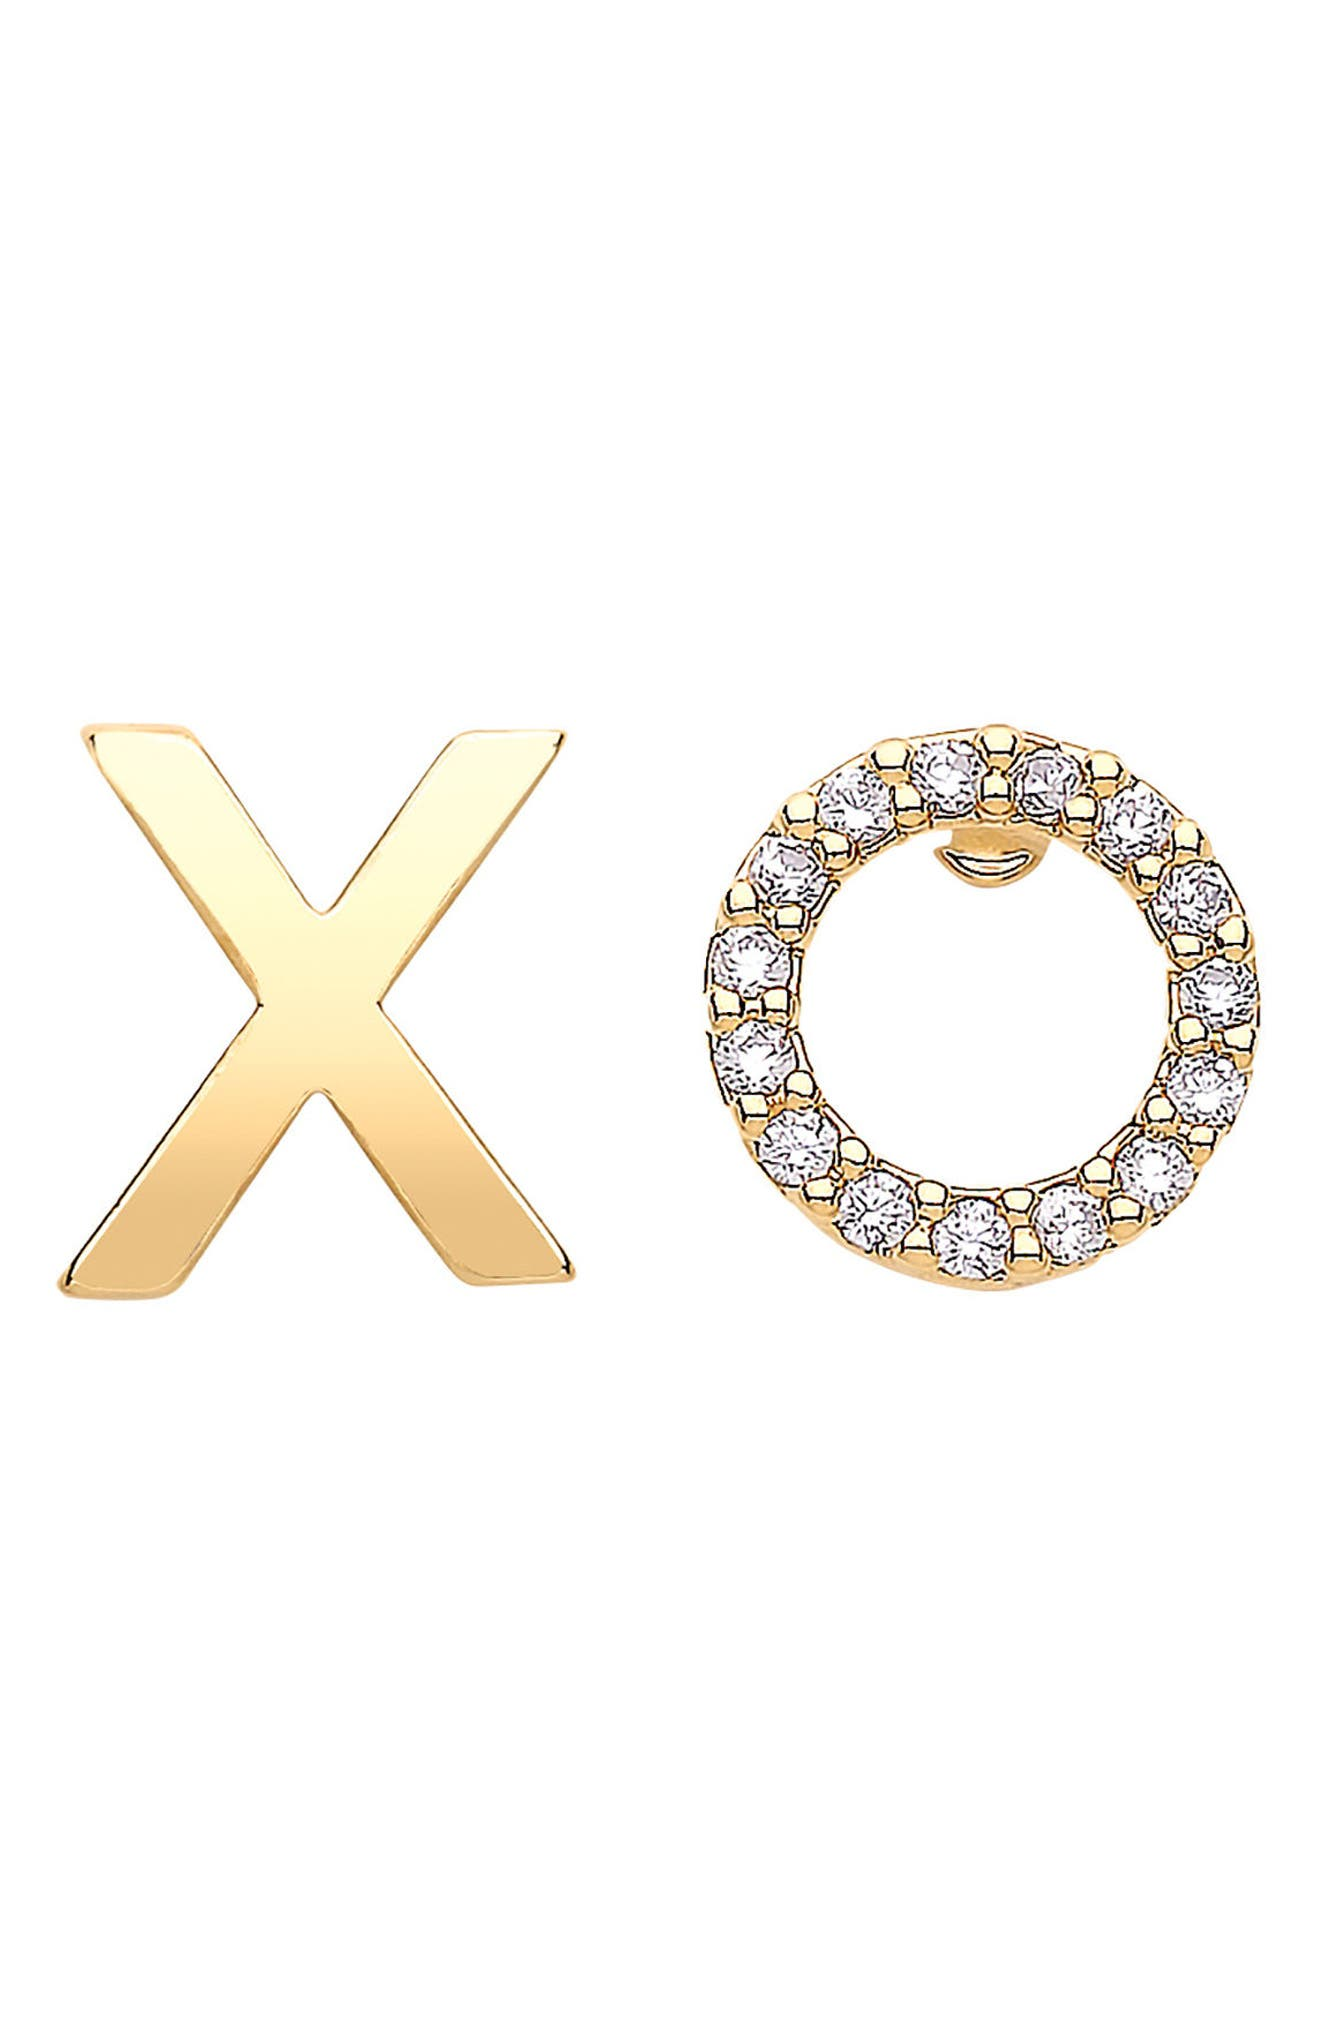 XO Stud Earrings,                             Main thumbnail 1, color,                             710